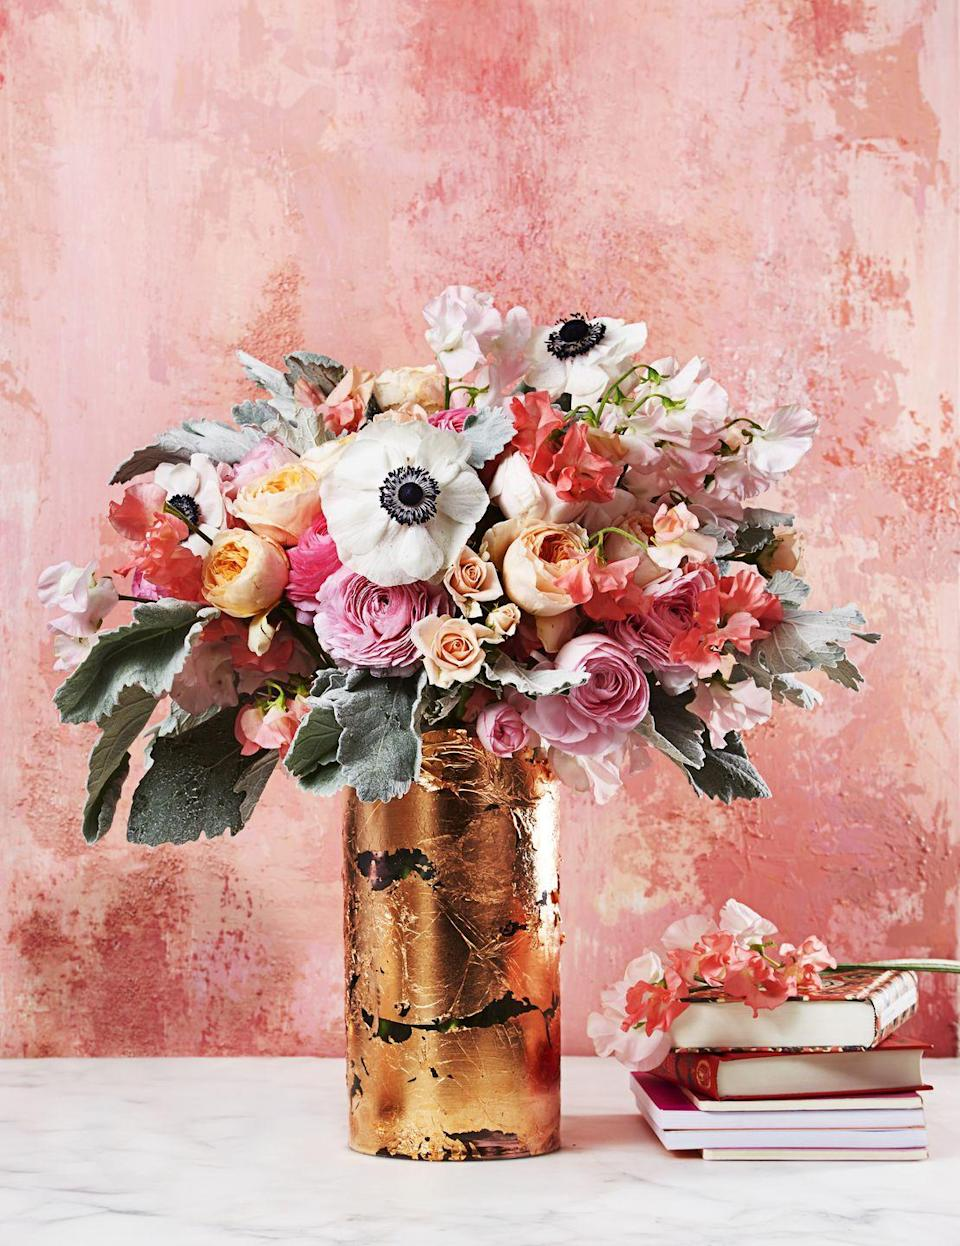 """<p>Upgrade a plain glass container with this DIY makeover. A pretty mix of garden roses, ranunculus, sweet peas and anemones look extra glam with a gilded finish. </p><p><em><a href=""""https://www.goodhousekeeping.com/home/craft-ideas/how-to/g597/diy-vase-upgrades/?slide=1"""" rel=""""nofollow noopener"""" target=""""_blank"""" data-ylk=""""slk:Get the tutorial »"""" class=""""link rapid-noclick-resp"""">Get the tutorial »</a></em> </p>"""